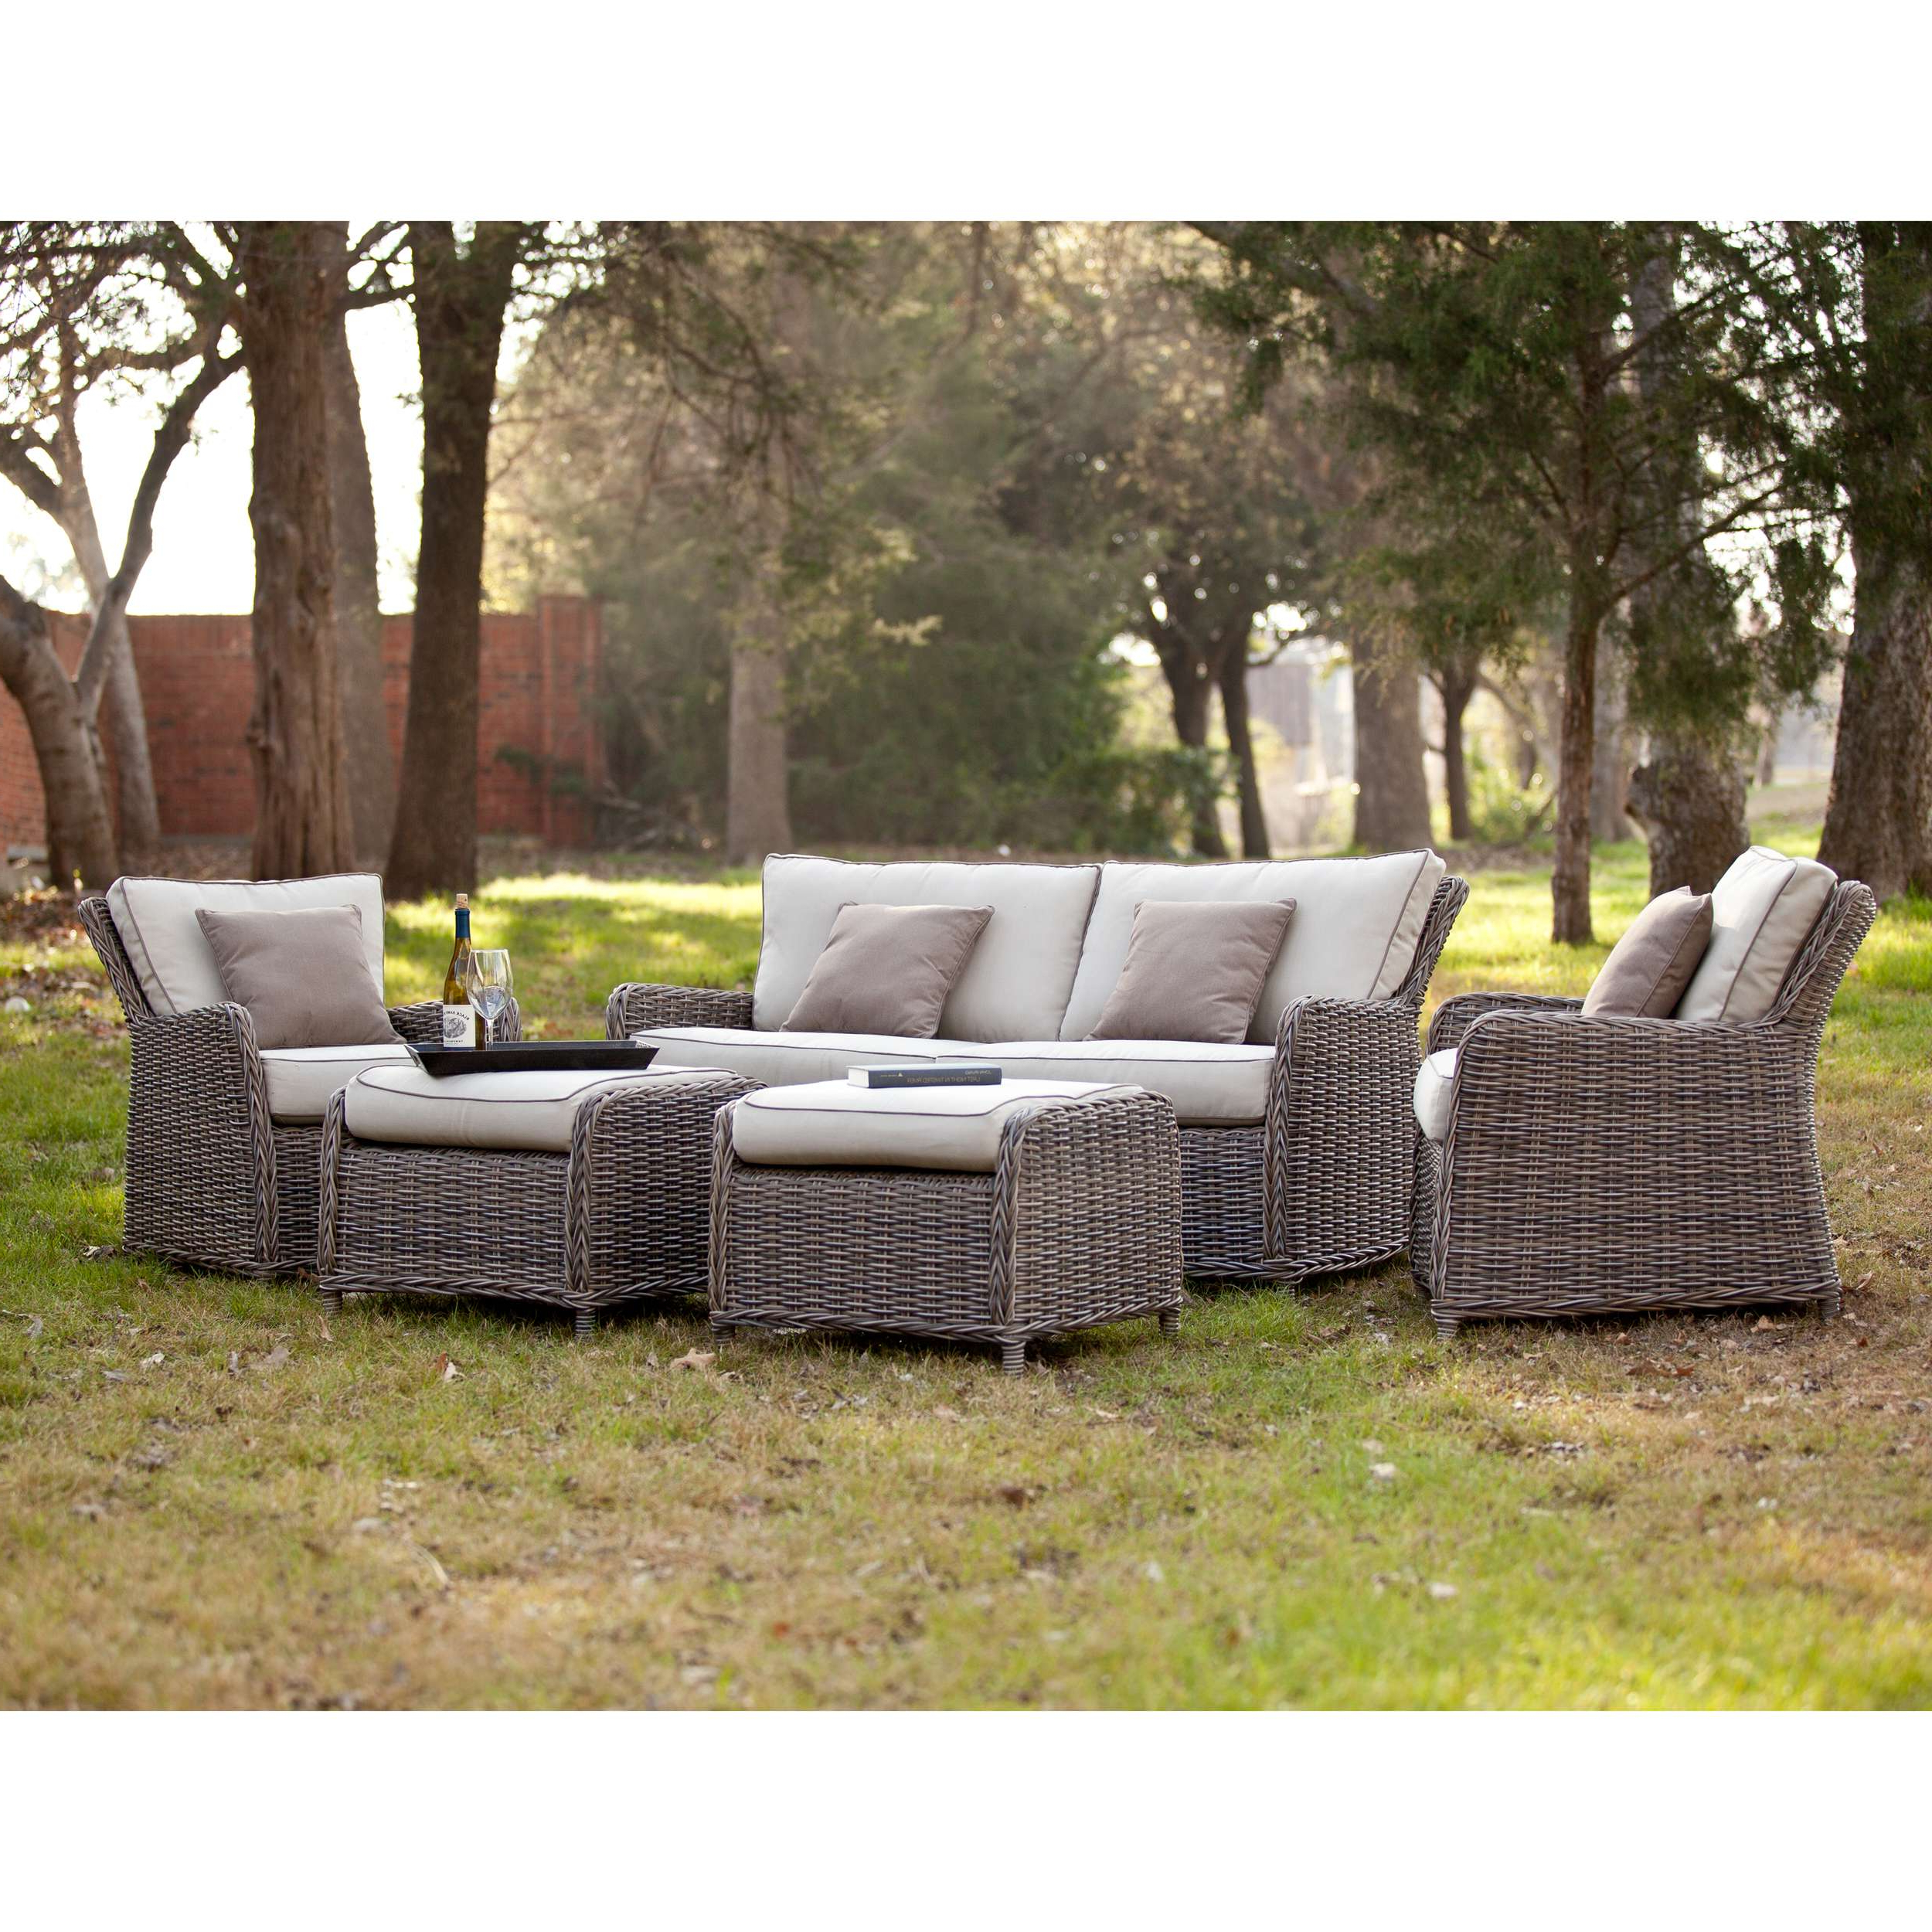 Latest Southern Enterprises Od5543 Intended For Avadi Outdoor Sofas & Ottomans 3 Piece Set (Gallery 9 of 25)